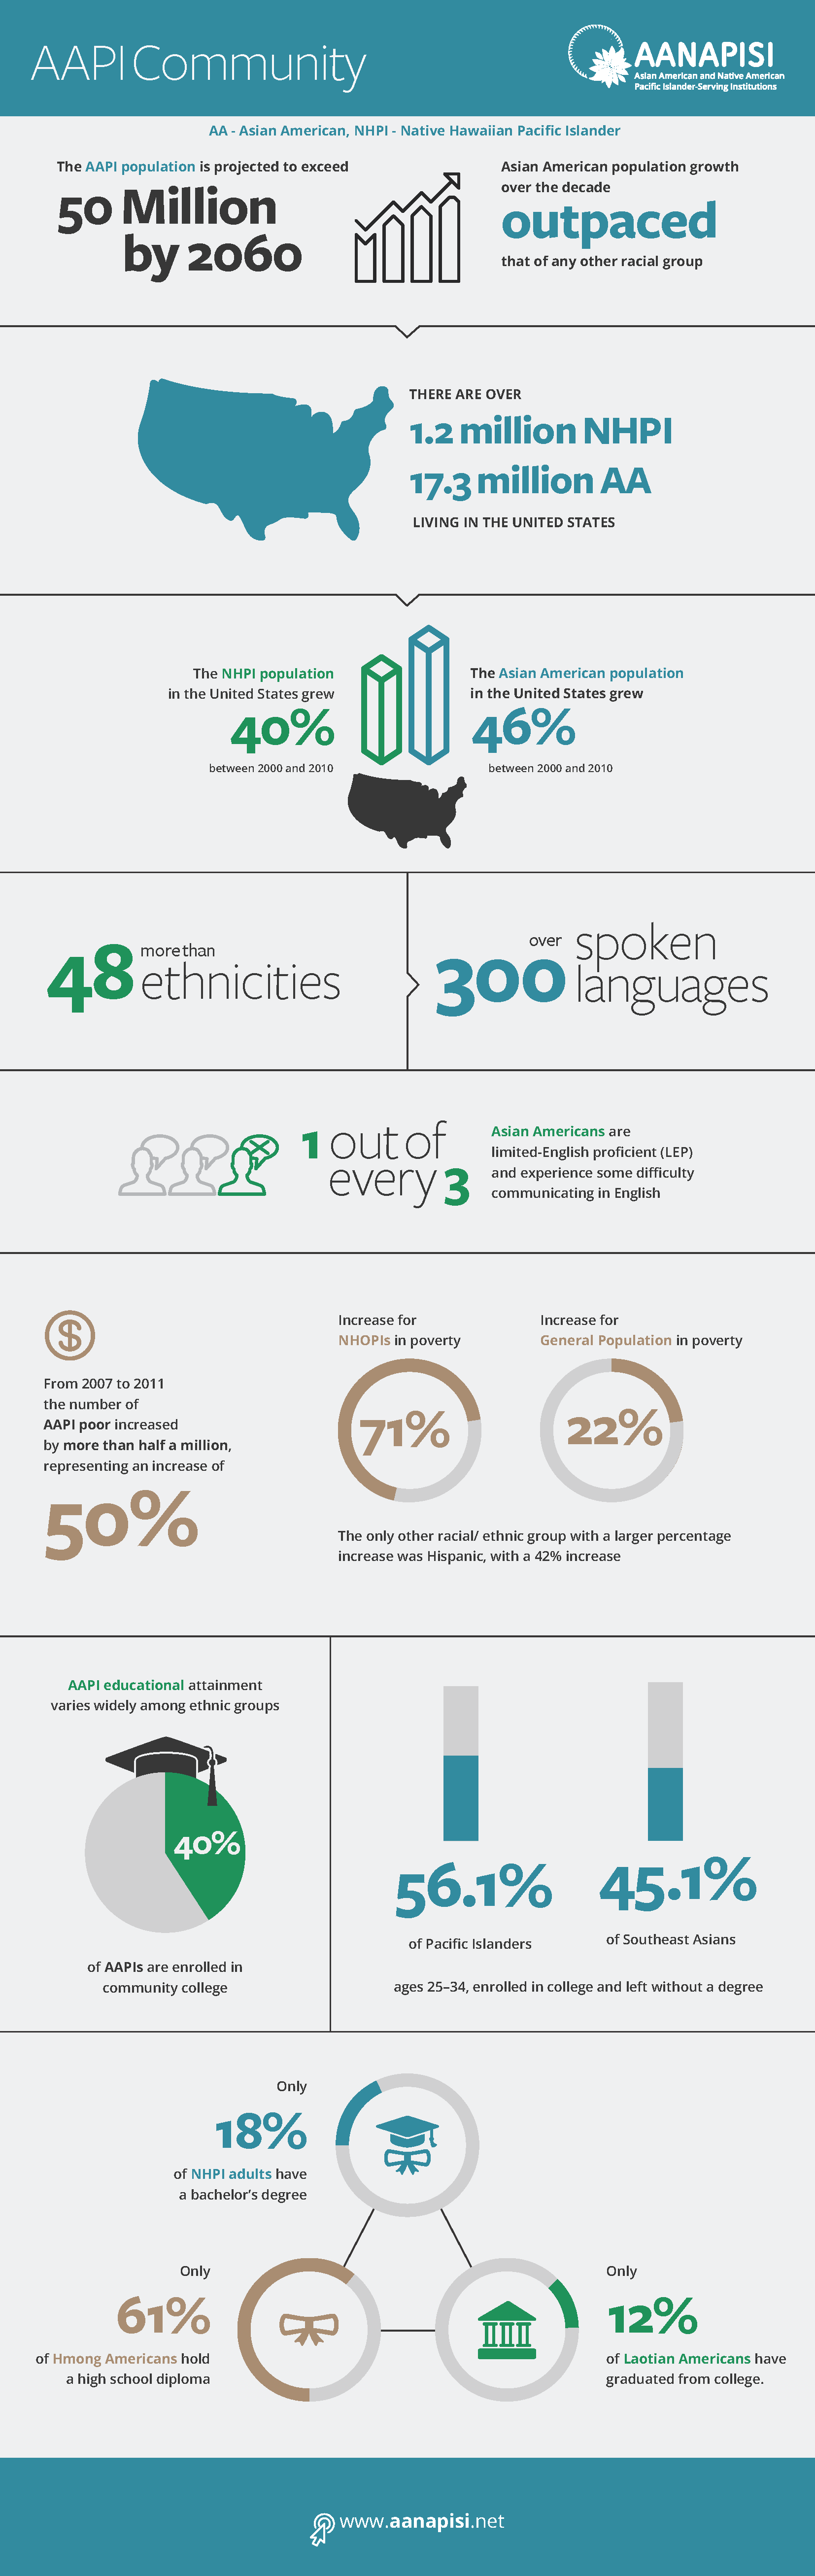 AAPI_Community_Infographic.png